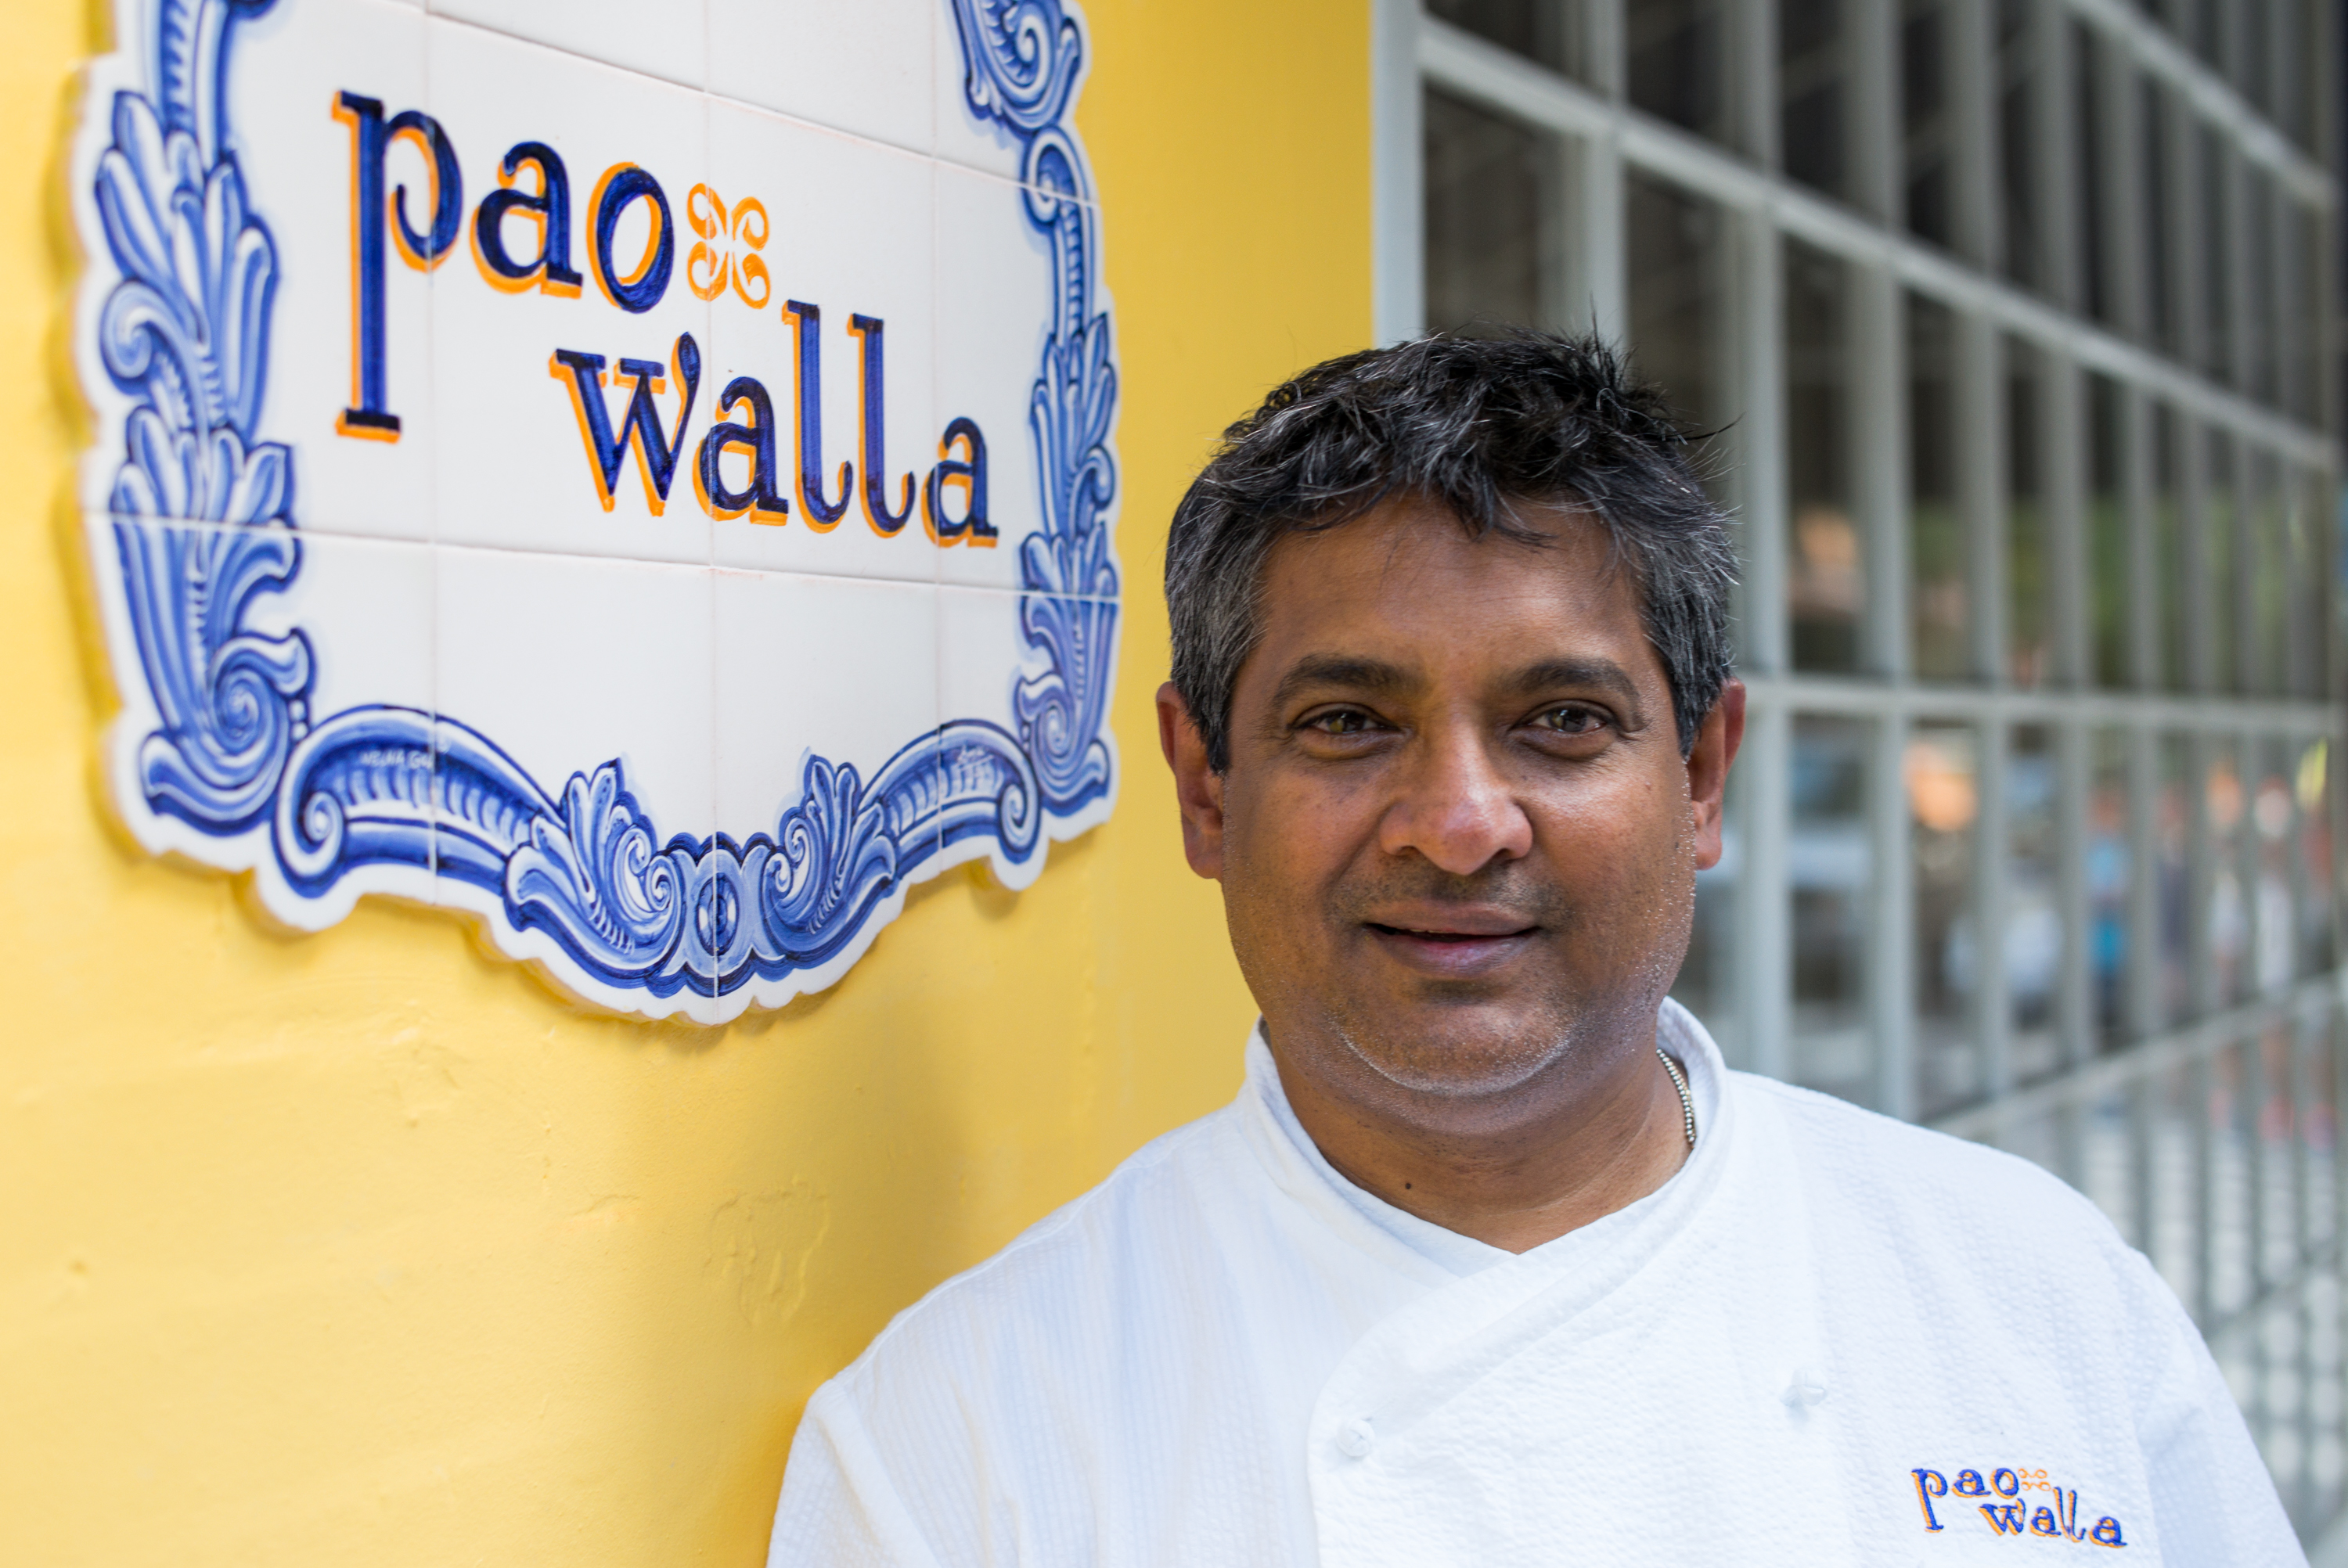 Floyd Cardoz in front of Paowalla's yellow wall